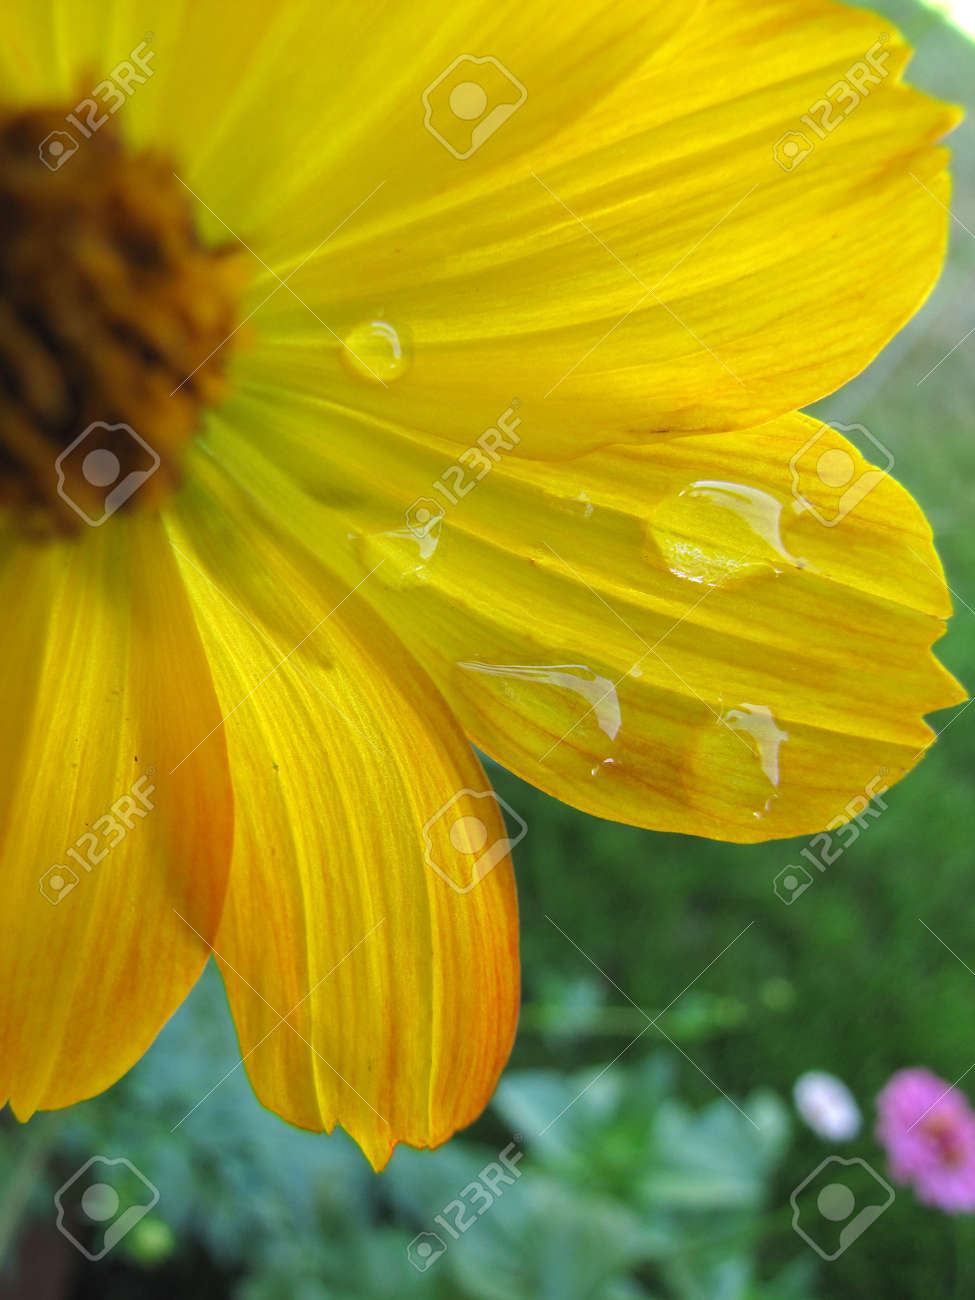 Yellow cosmo flower with water droplets in garden Stock Photo - 17501486